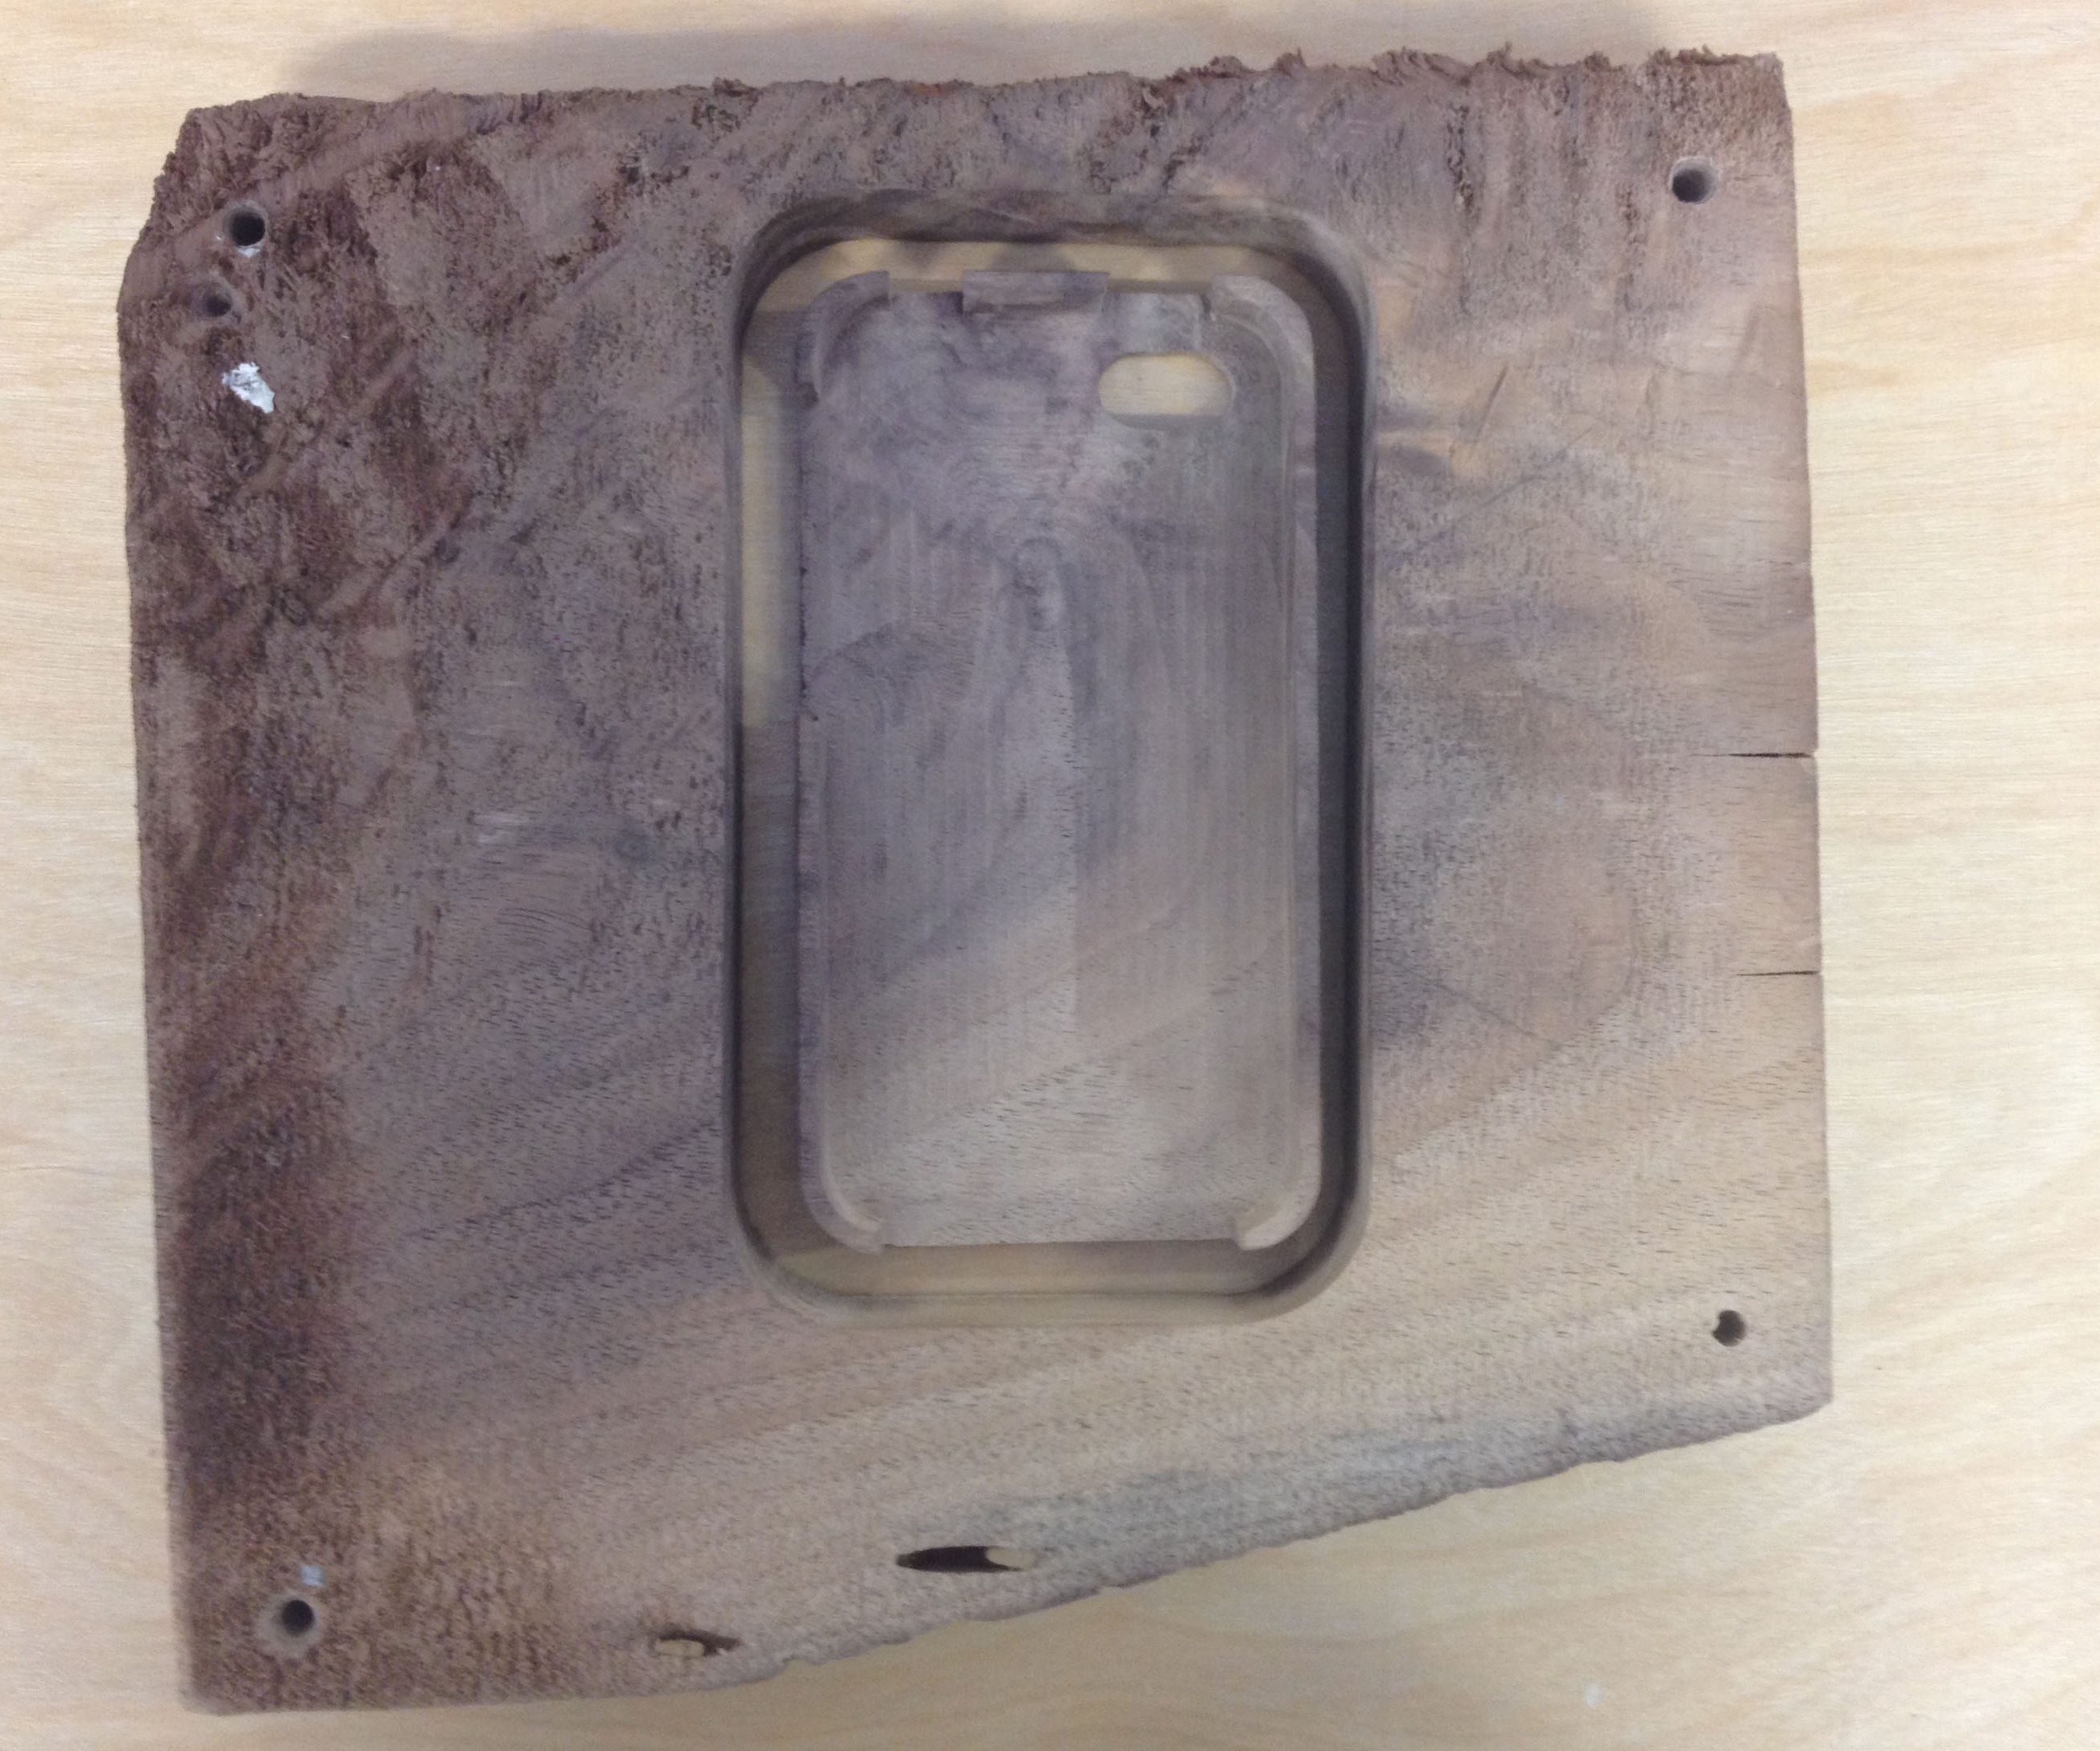 Wood iPhone Case Made at TechShop Chandler With No 3-D Software